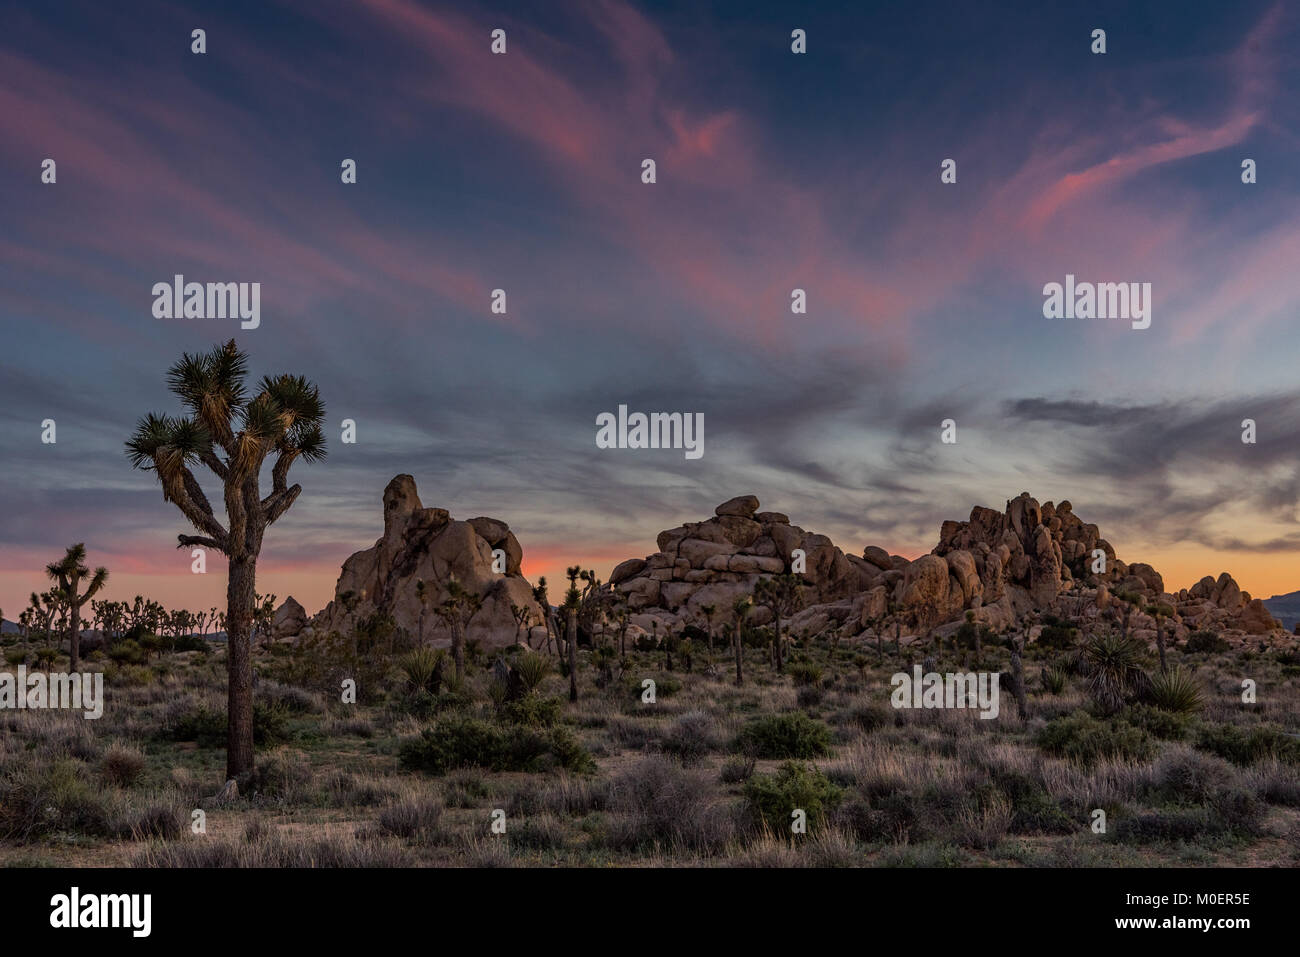 Subtle Sunset Over Joshua Tree and Boulders - Stock Image